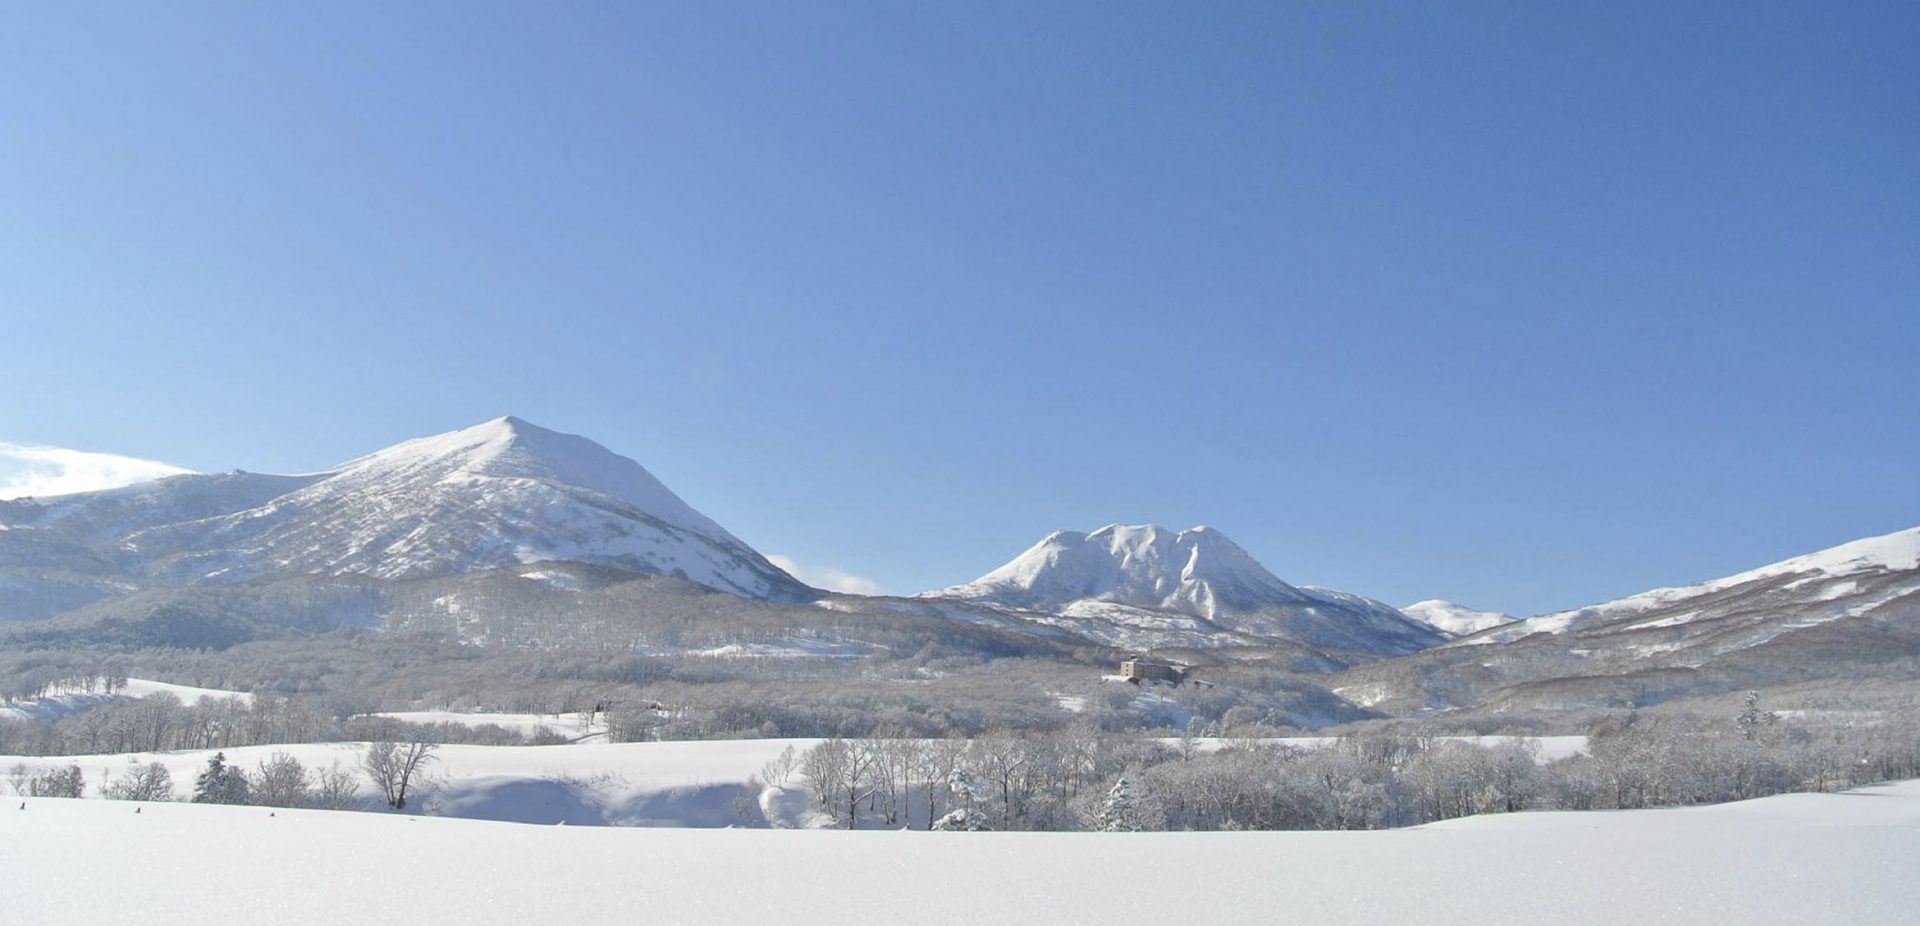 View of Niseko mountains